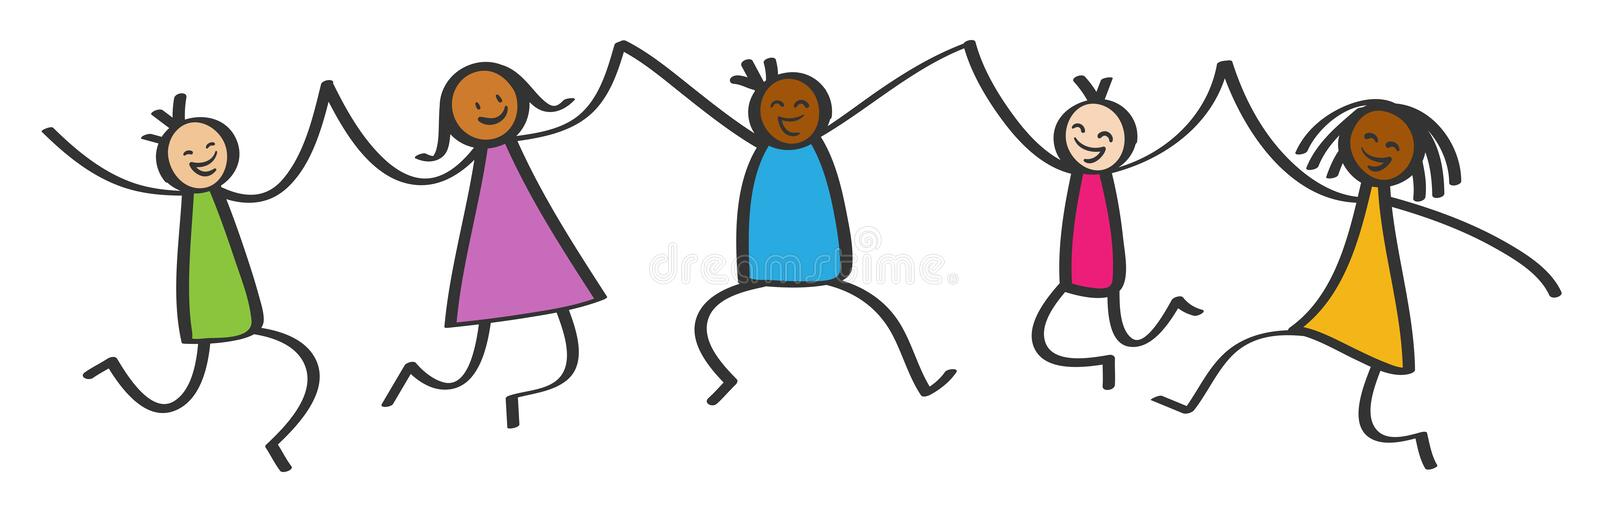 Simple stick figures, five happy multicultural kids jumping, holding hands, smiling and laughing vector illustration